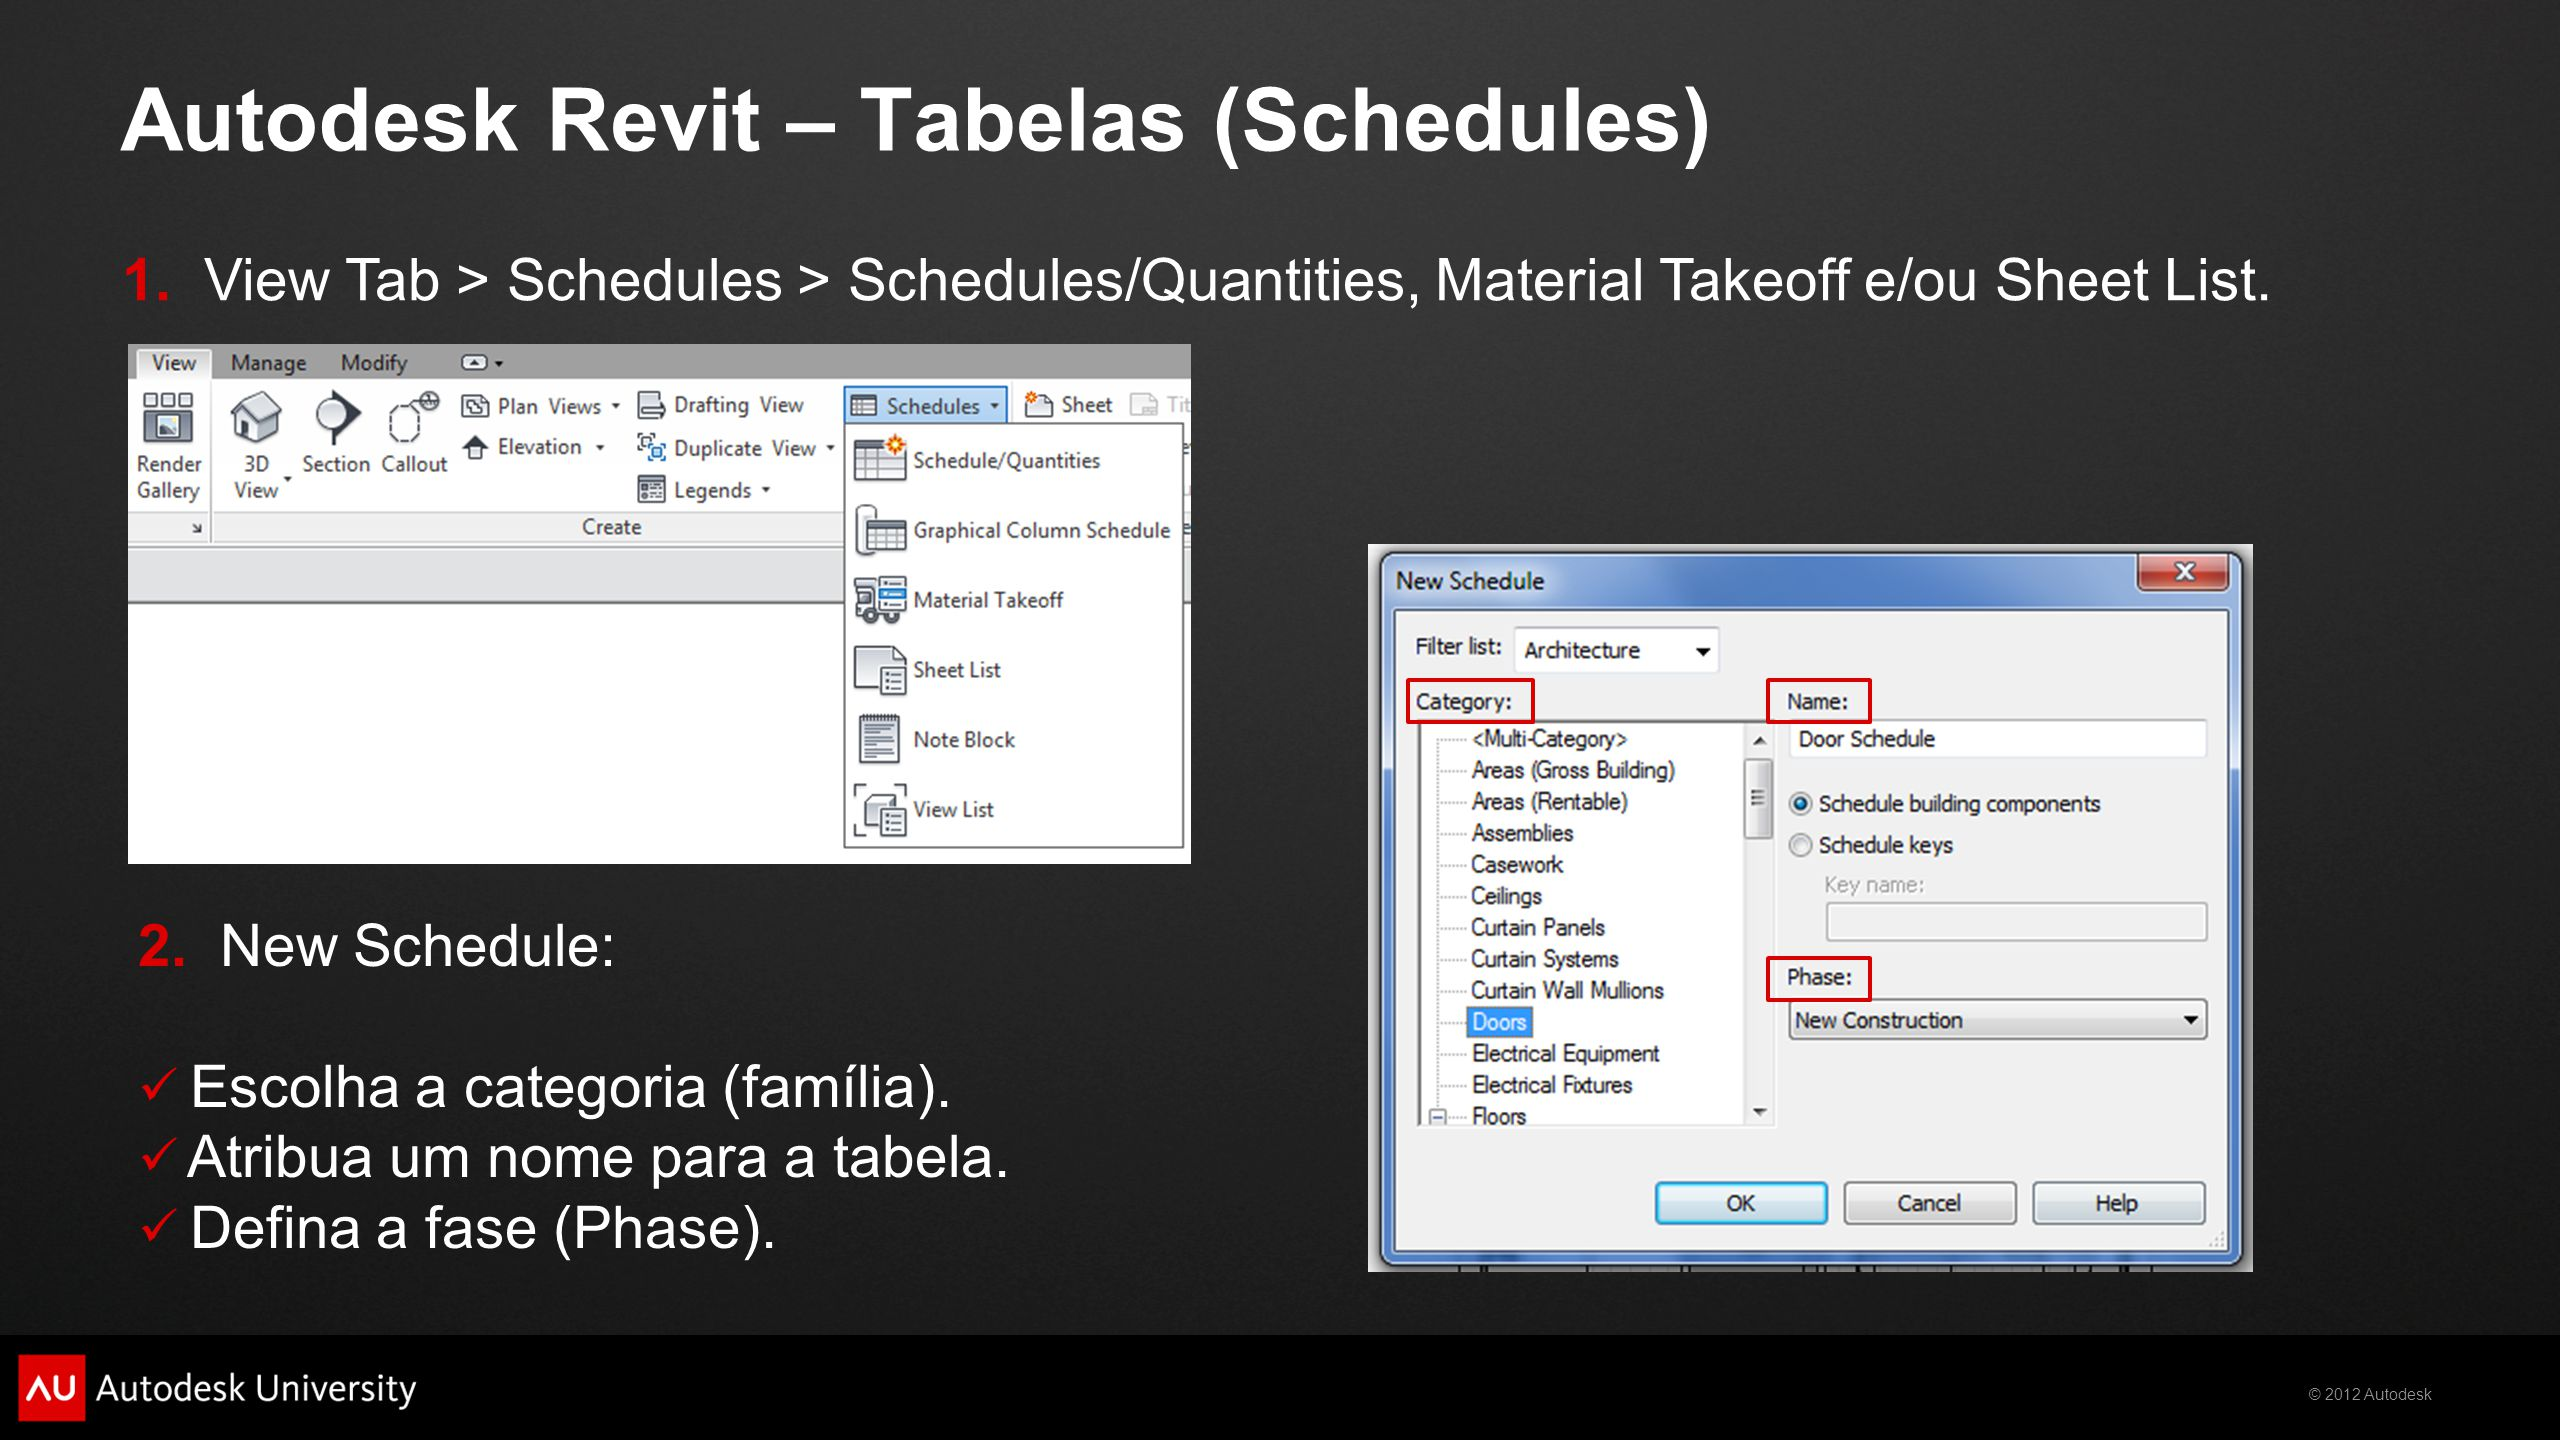 © 2012 Autodesk Autodesk Revit – Tabelas (Schedules) 1. View Tab > Schedules > Schedules/Quantities, Material Takeoff e/ou Sheet List. 2. New Schedule